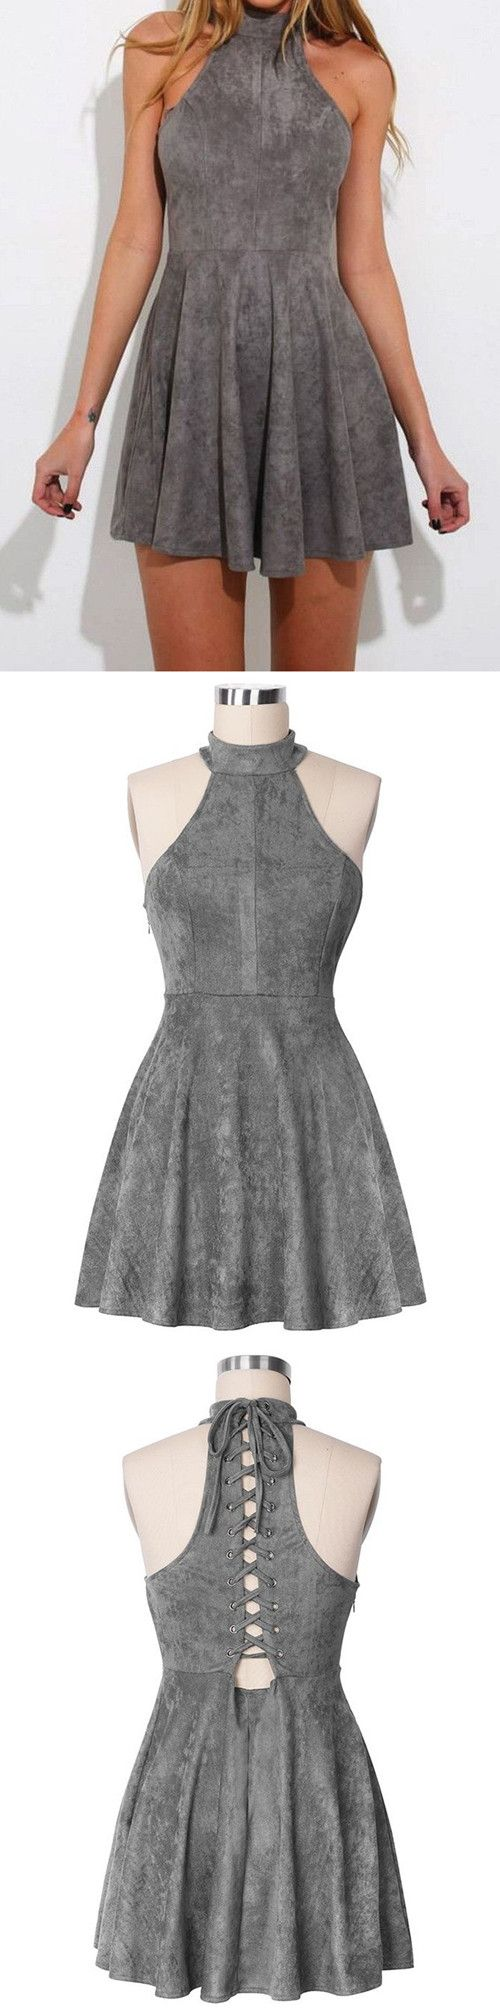 short homecoming dresses,grey homecoming dresses,simple homecoming dresses,cheap homecoming dresses @simpledress2480